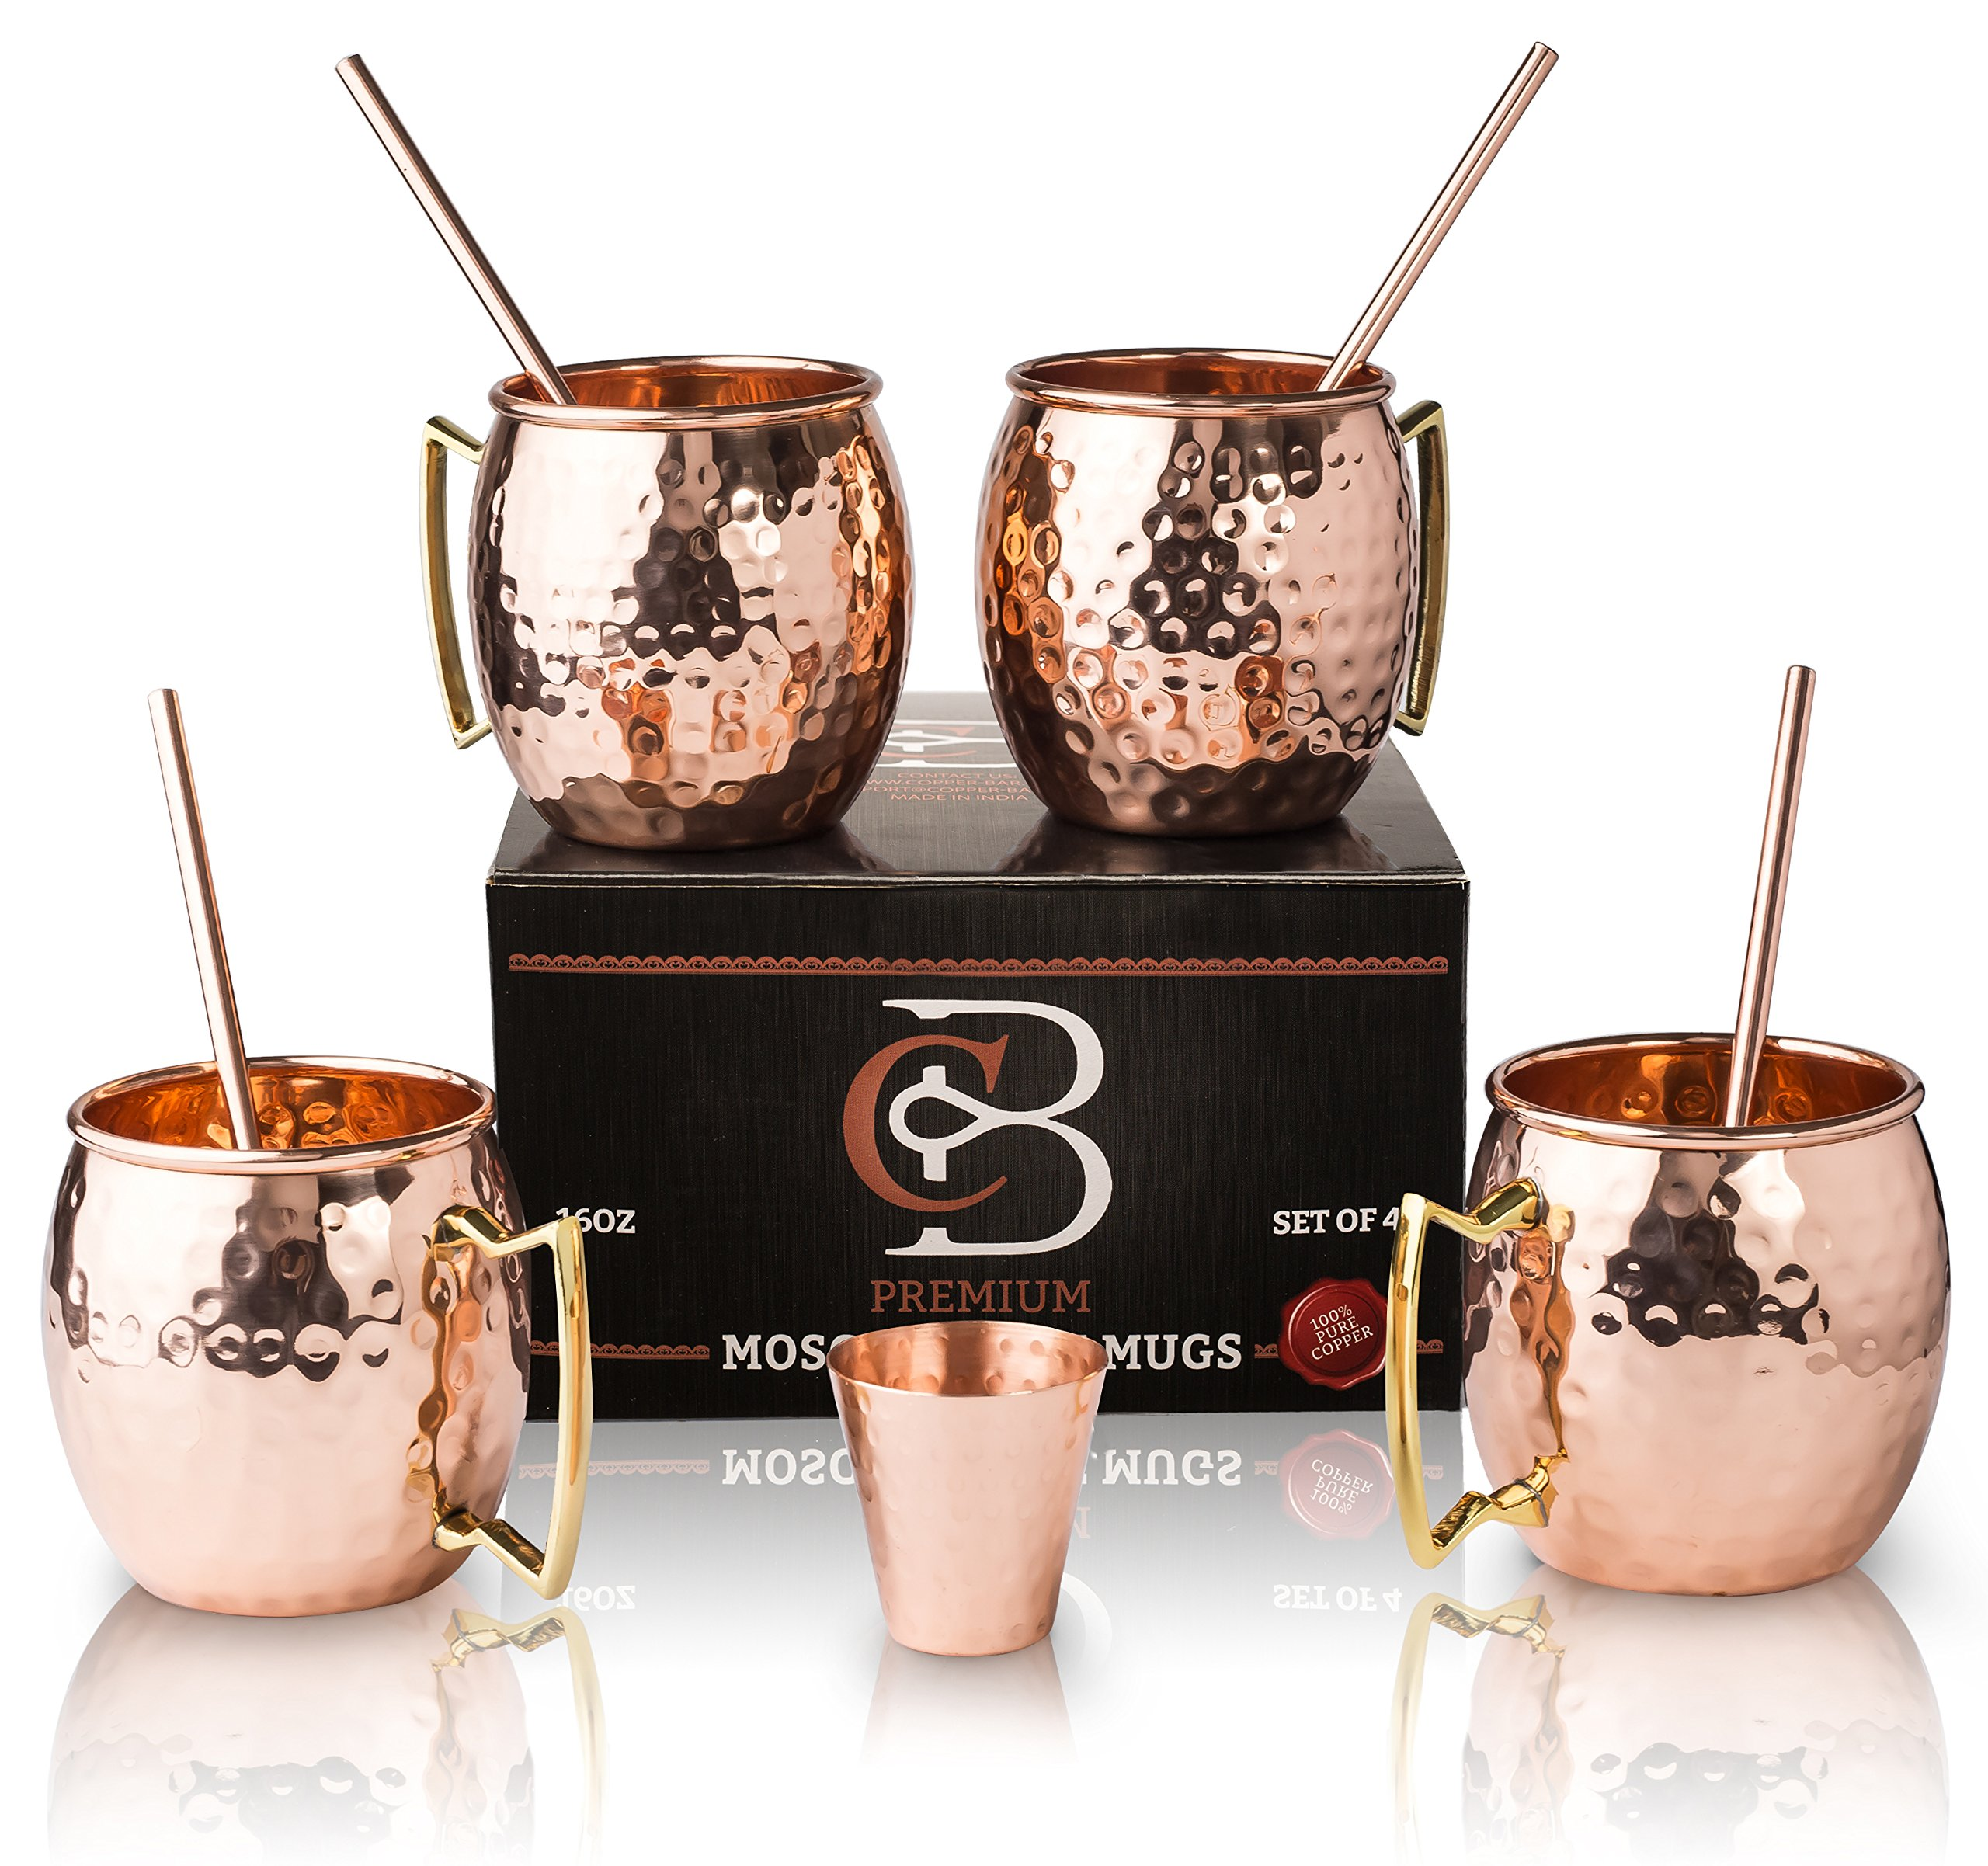 Moscow Mule Mugs 100% Solid Copper, Hammered, Gift Set of 4, No Nickel - Food Safe, 16oz, BONUS: 4 Straws + 1 Shot Glass & 2 E-Books by Copper-Bar by Copper-Bar (Image #1)